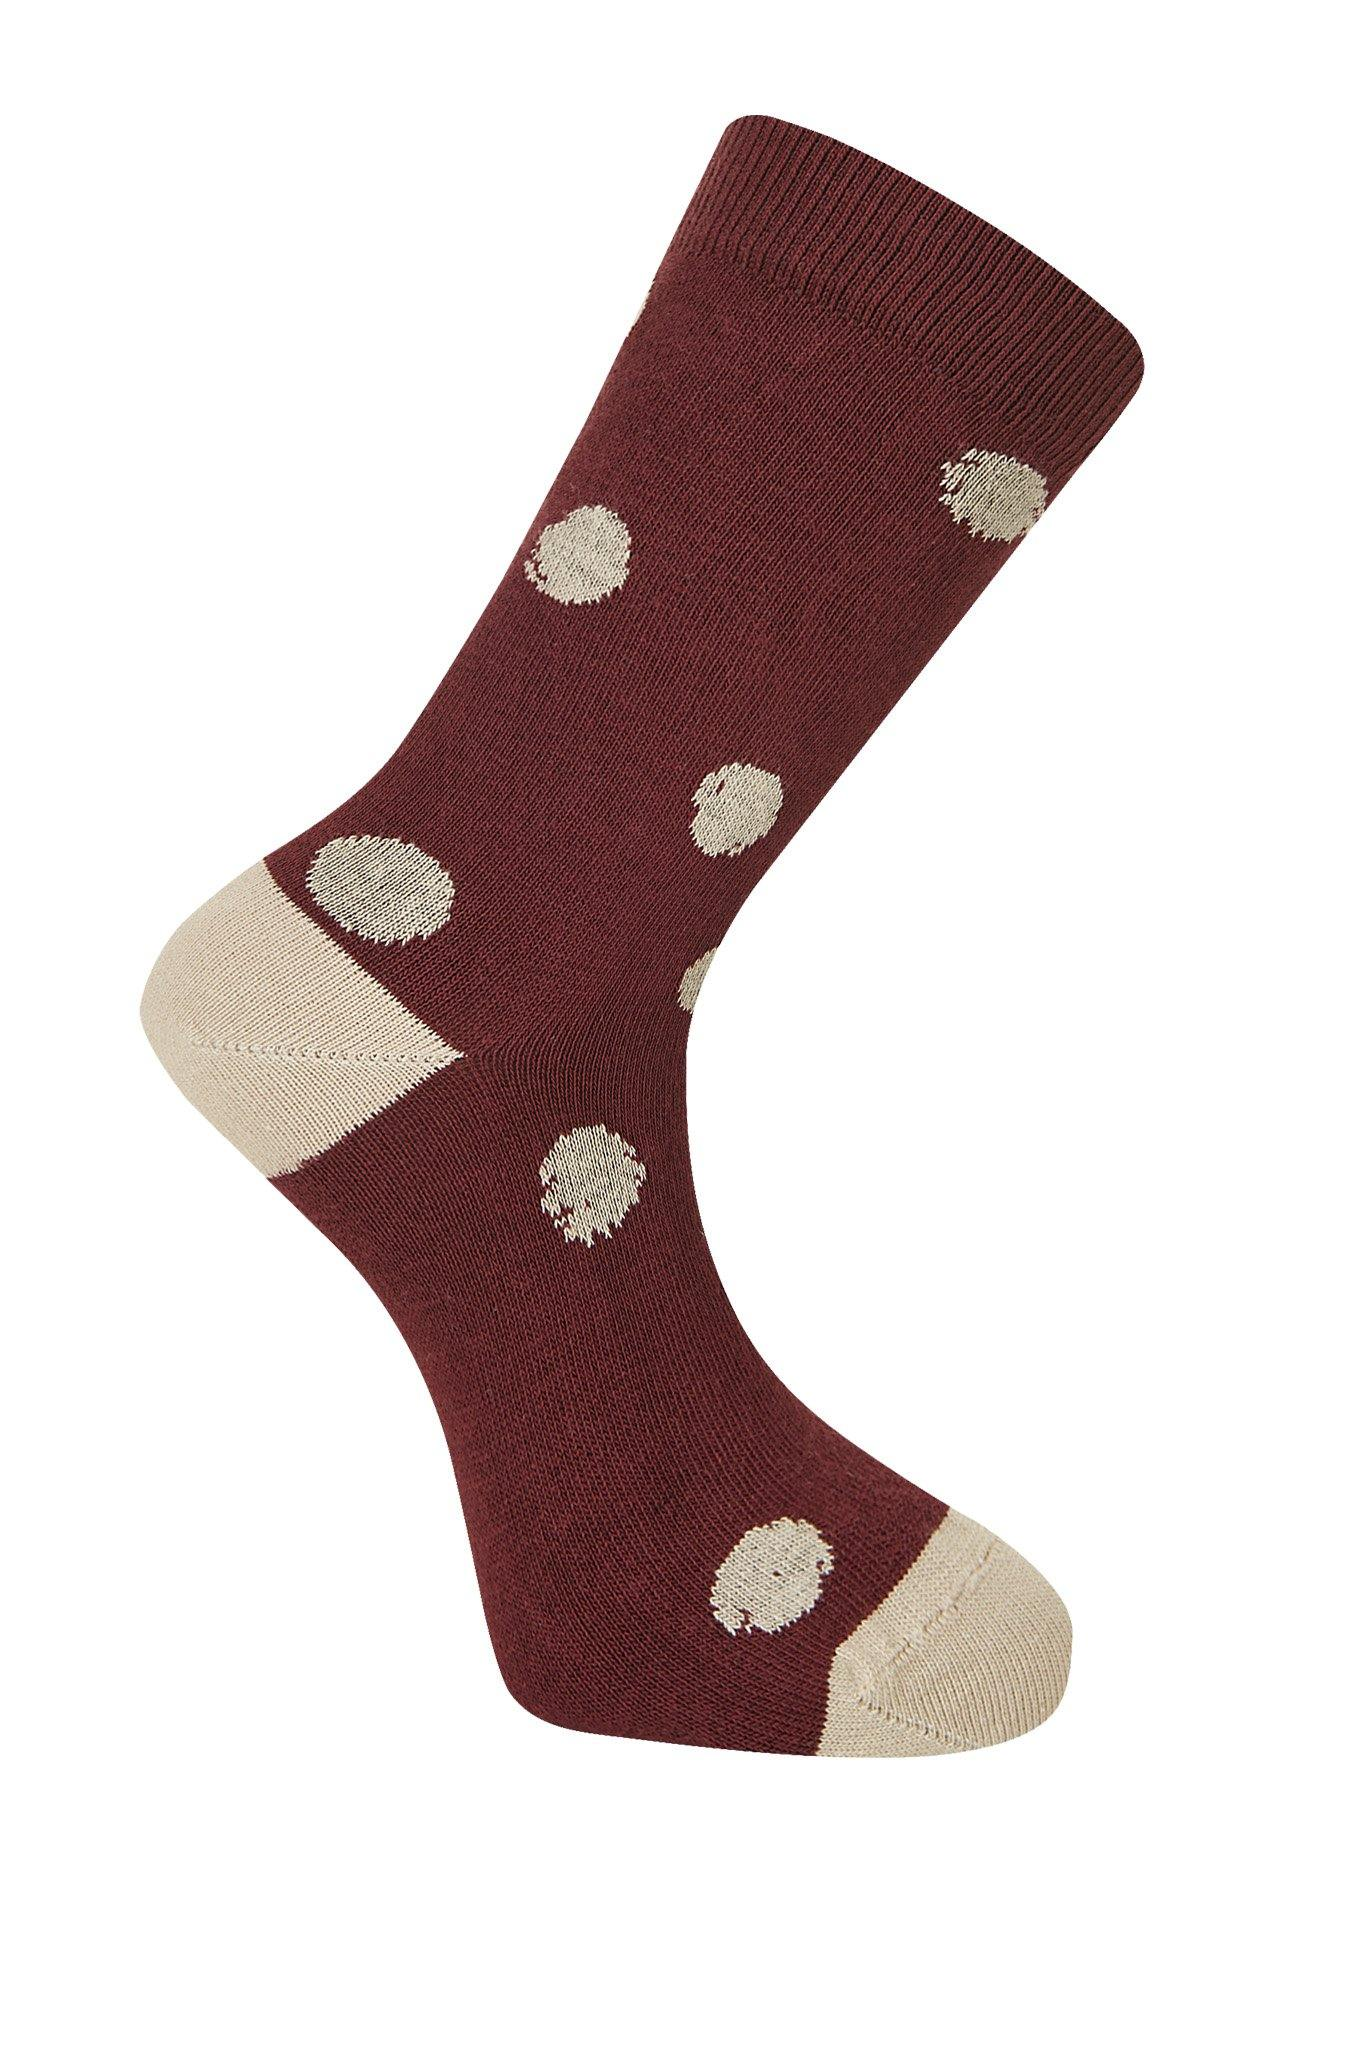 KUSAMA DOT Burnt Red Organic Cotton Socks - Komodo Fashion